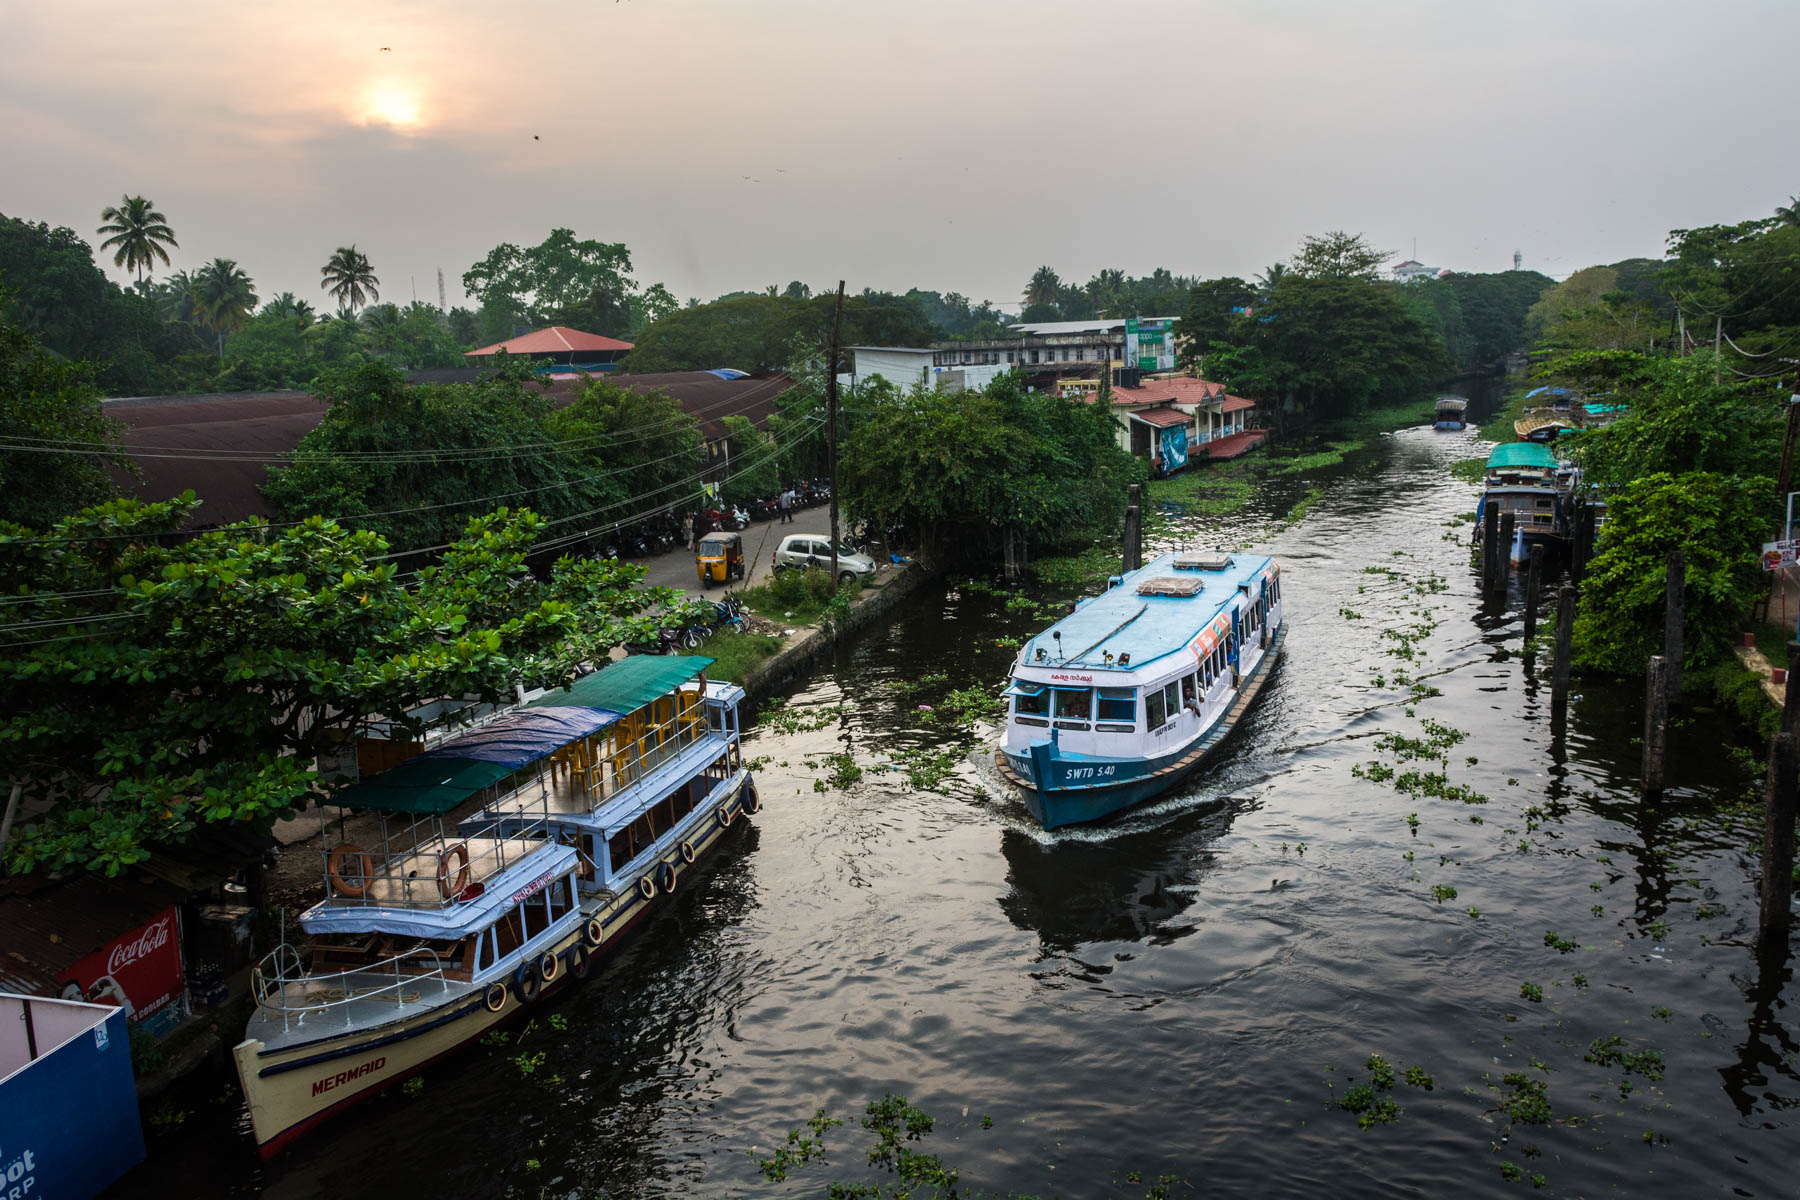 A cheap ferry in Alleppey (Alappuzha), Kerala, India - Lost With Purpose